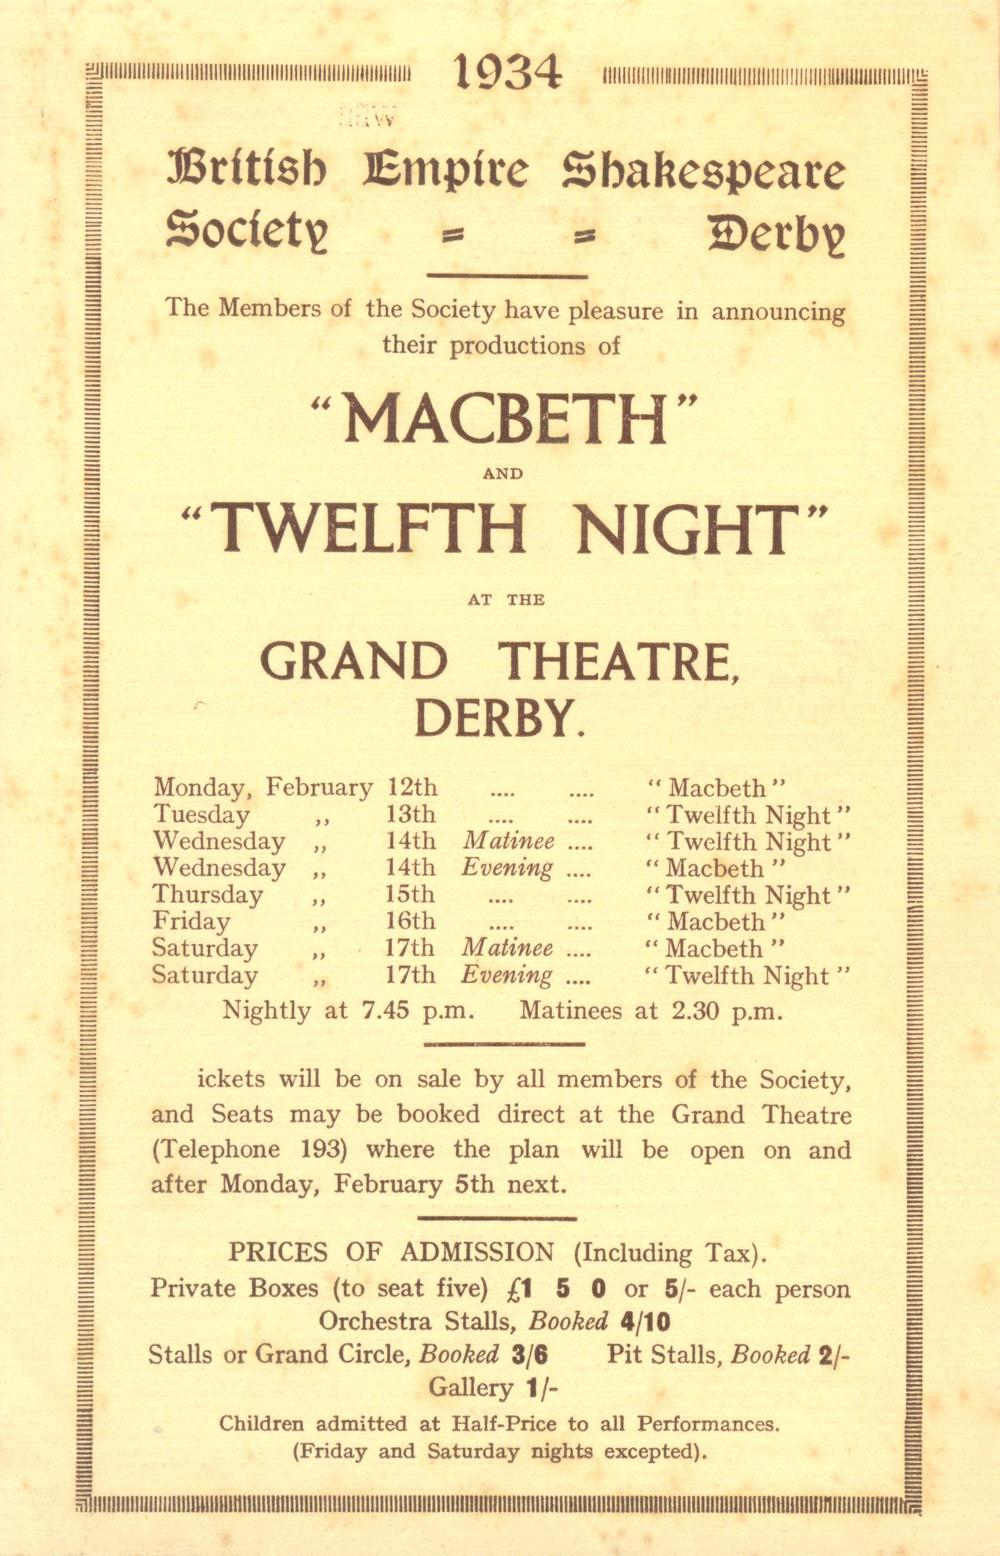 'Macbeth' & 'Twelfth Night' 1934